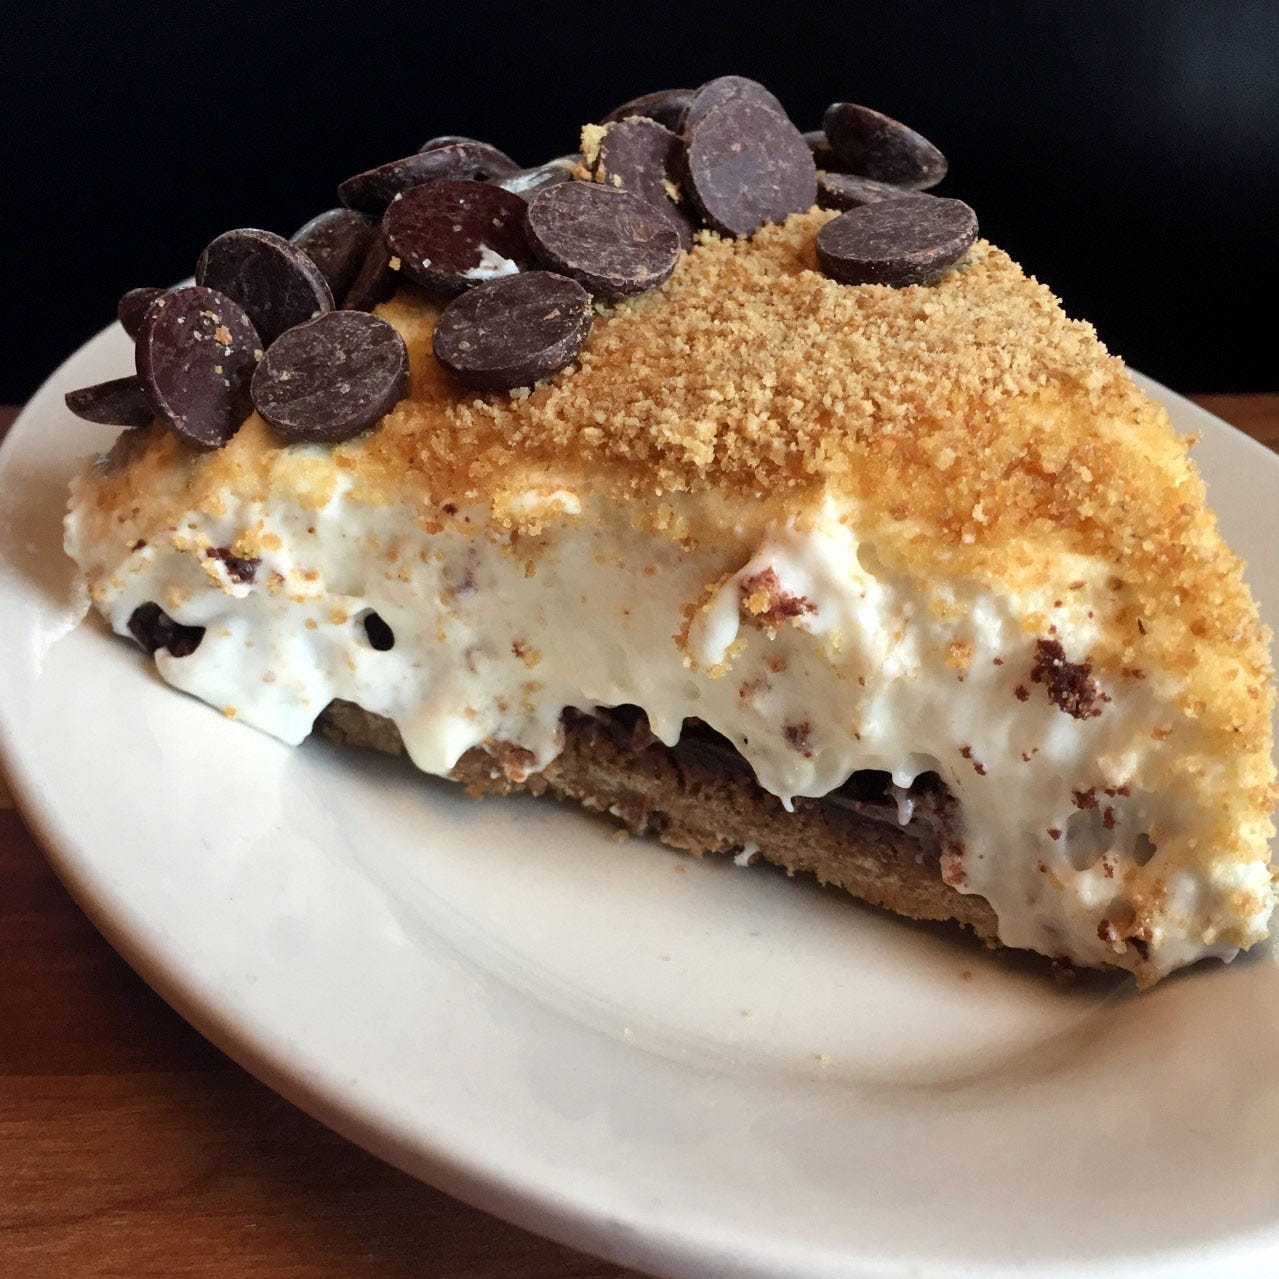 Honeypie's 4-layered wonder, S'Mores Pie, takes decadence to a new level